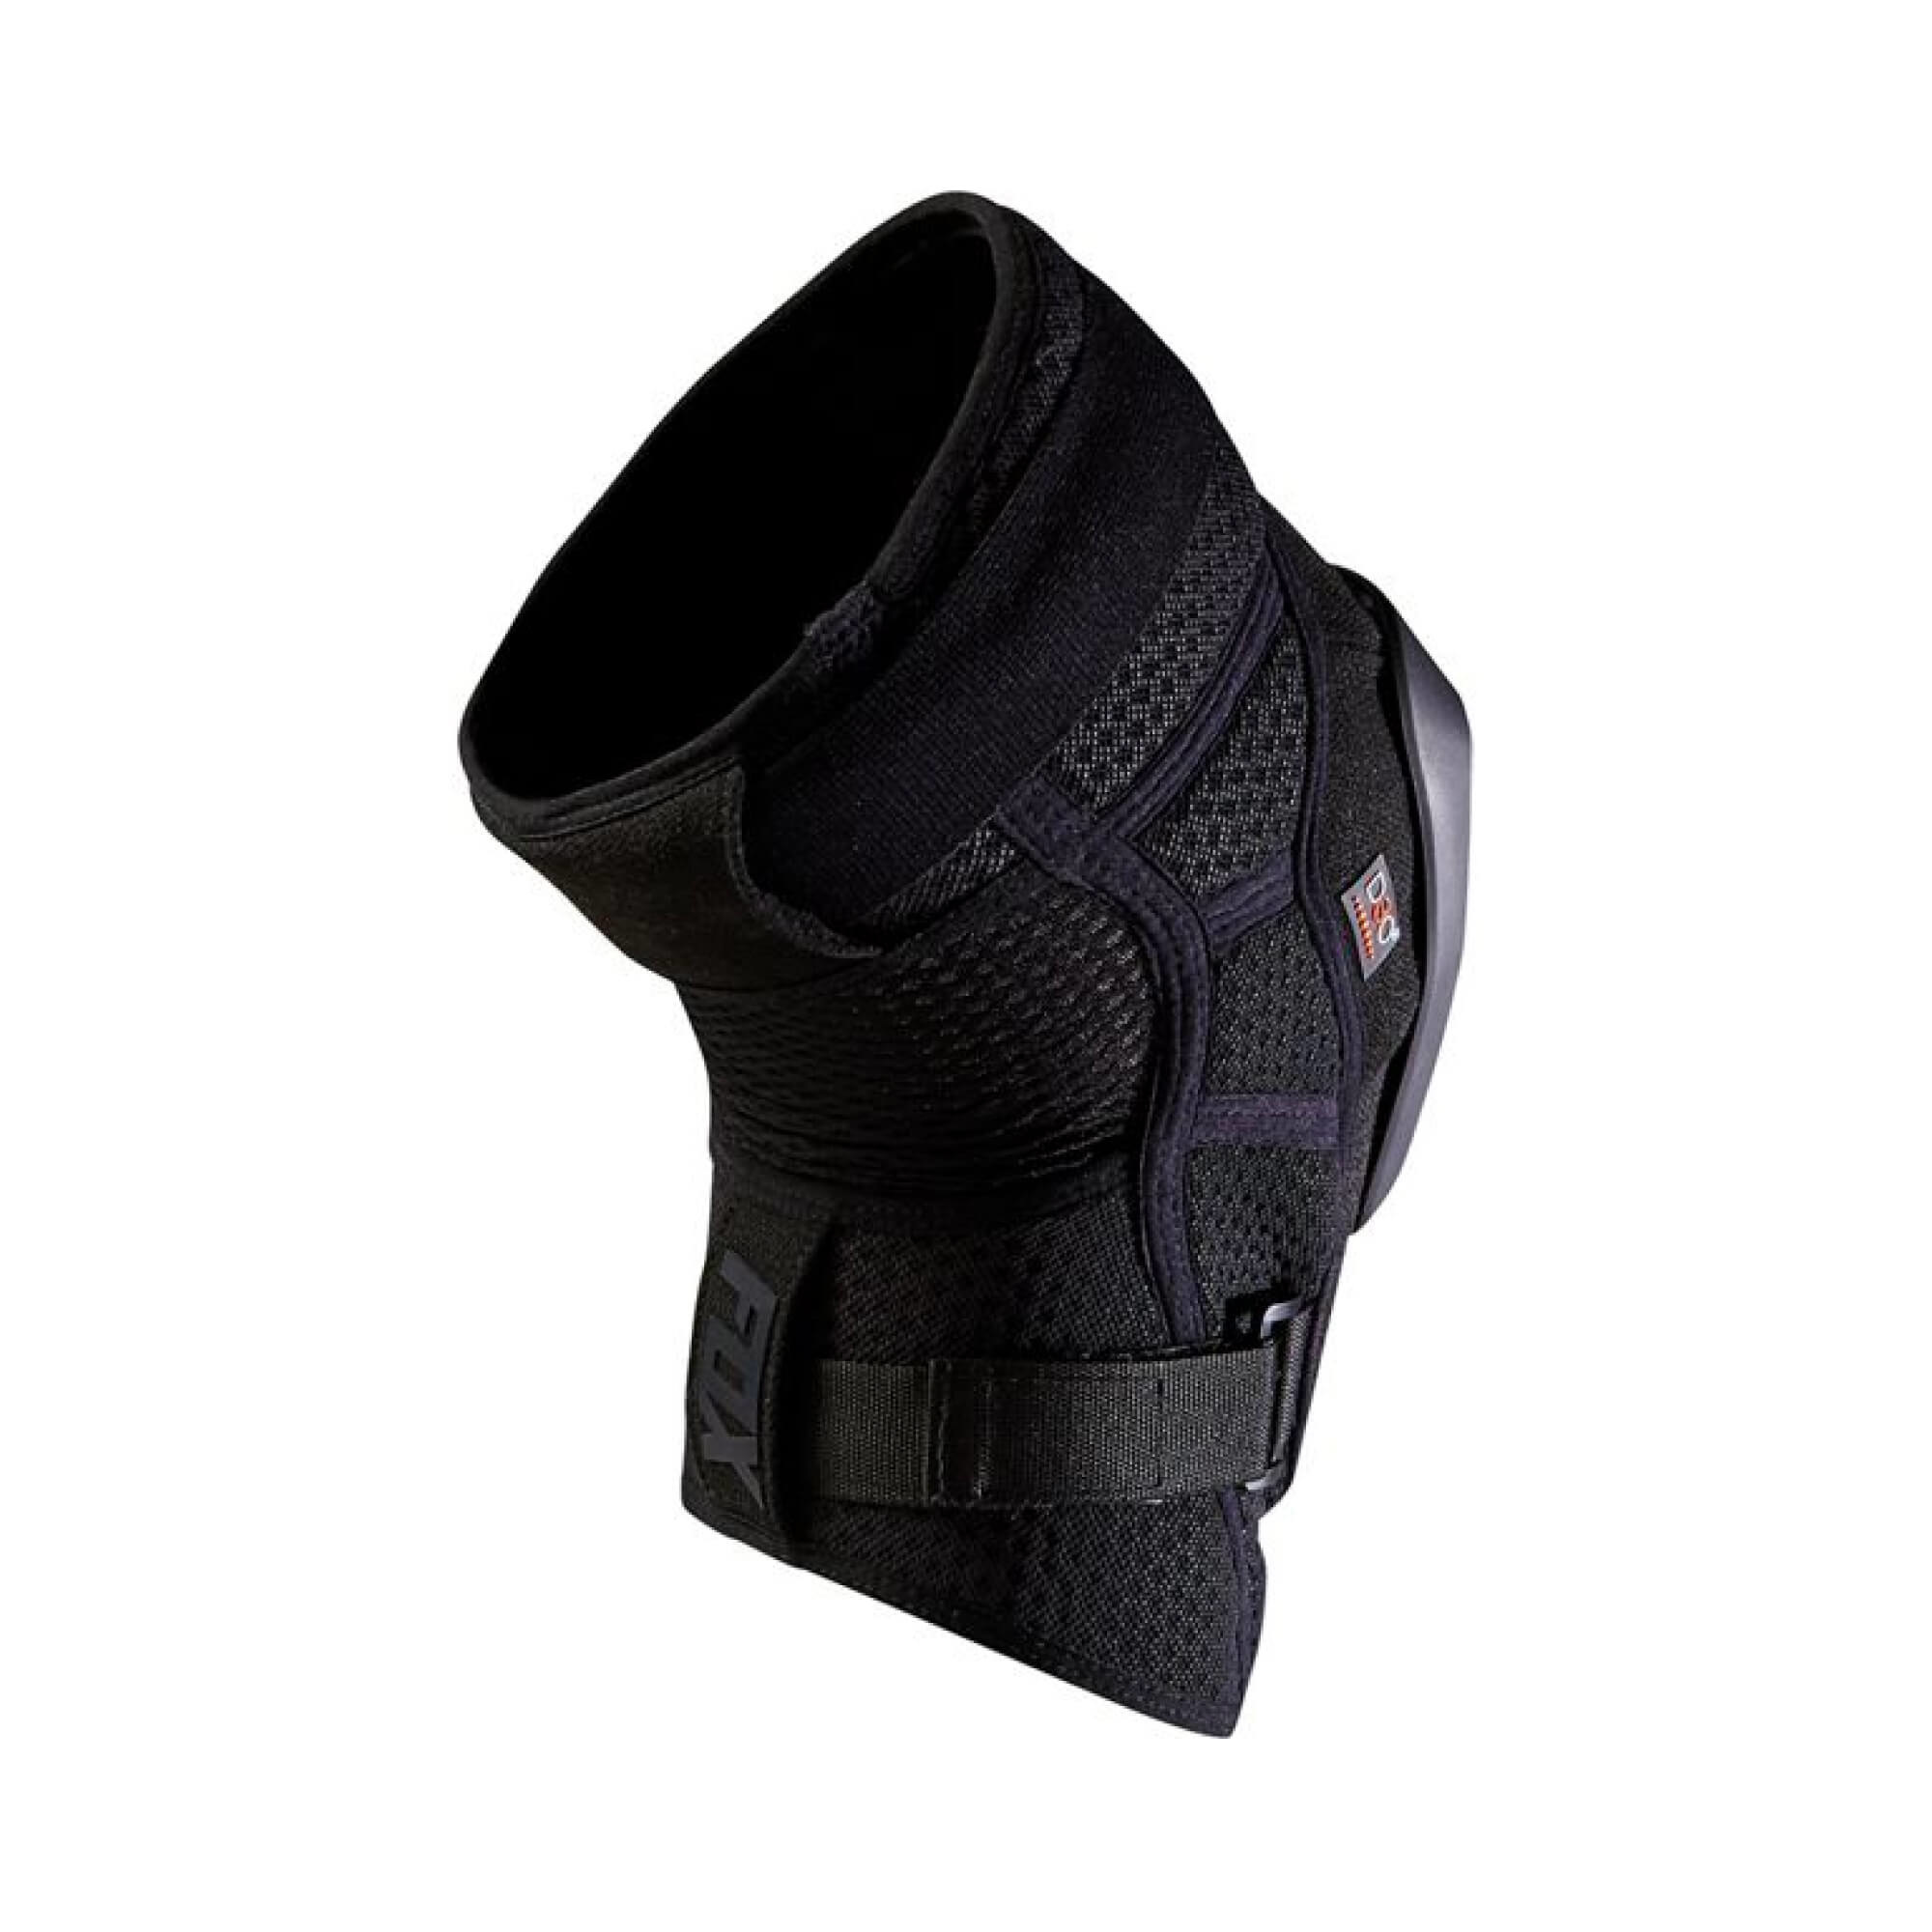 Launch Pro D3O Knee Guard Black-2